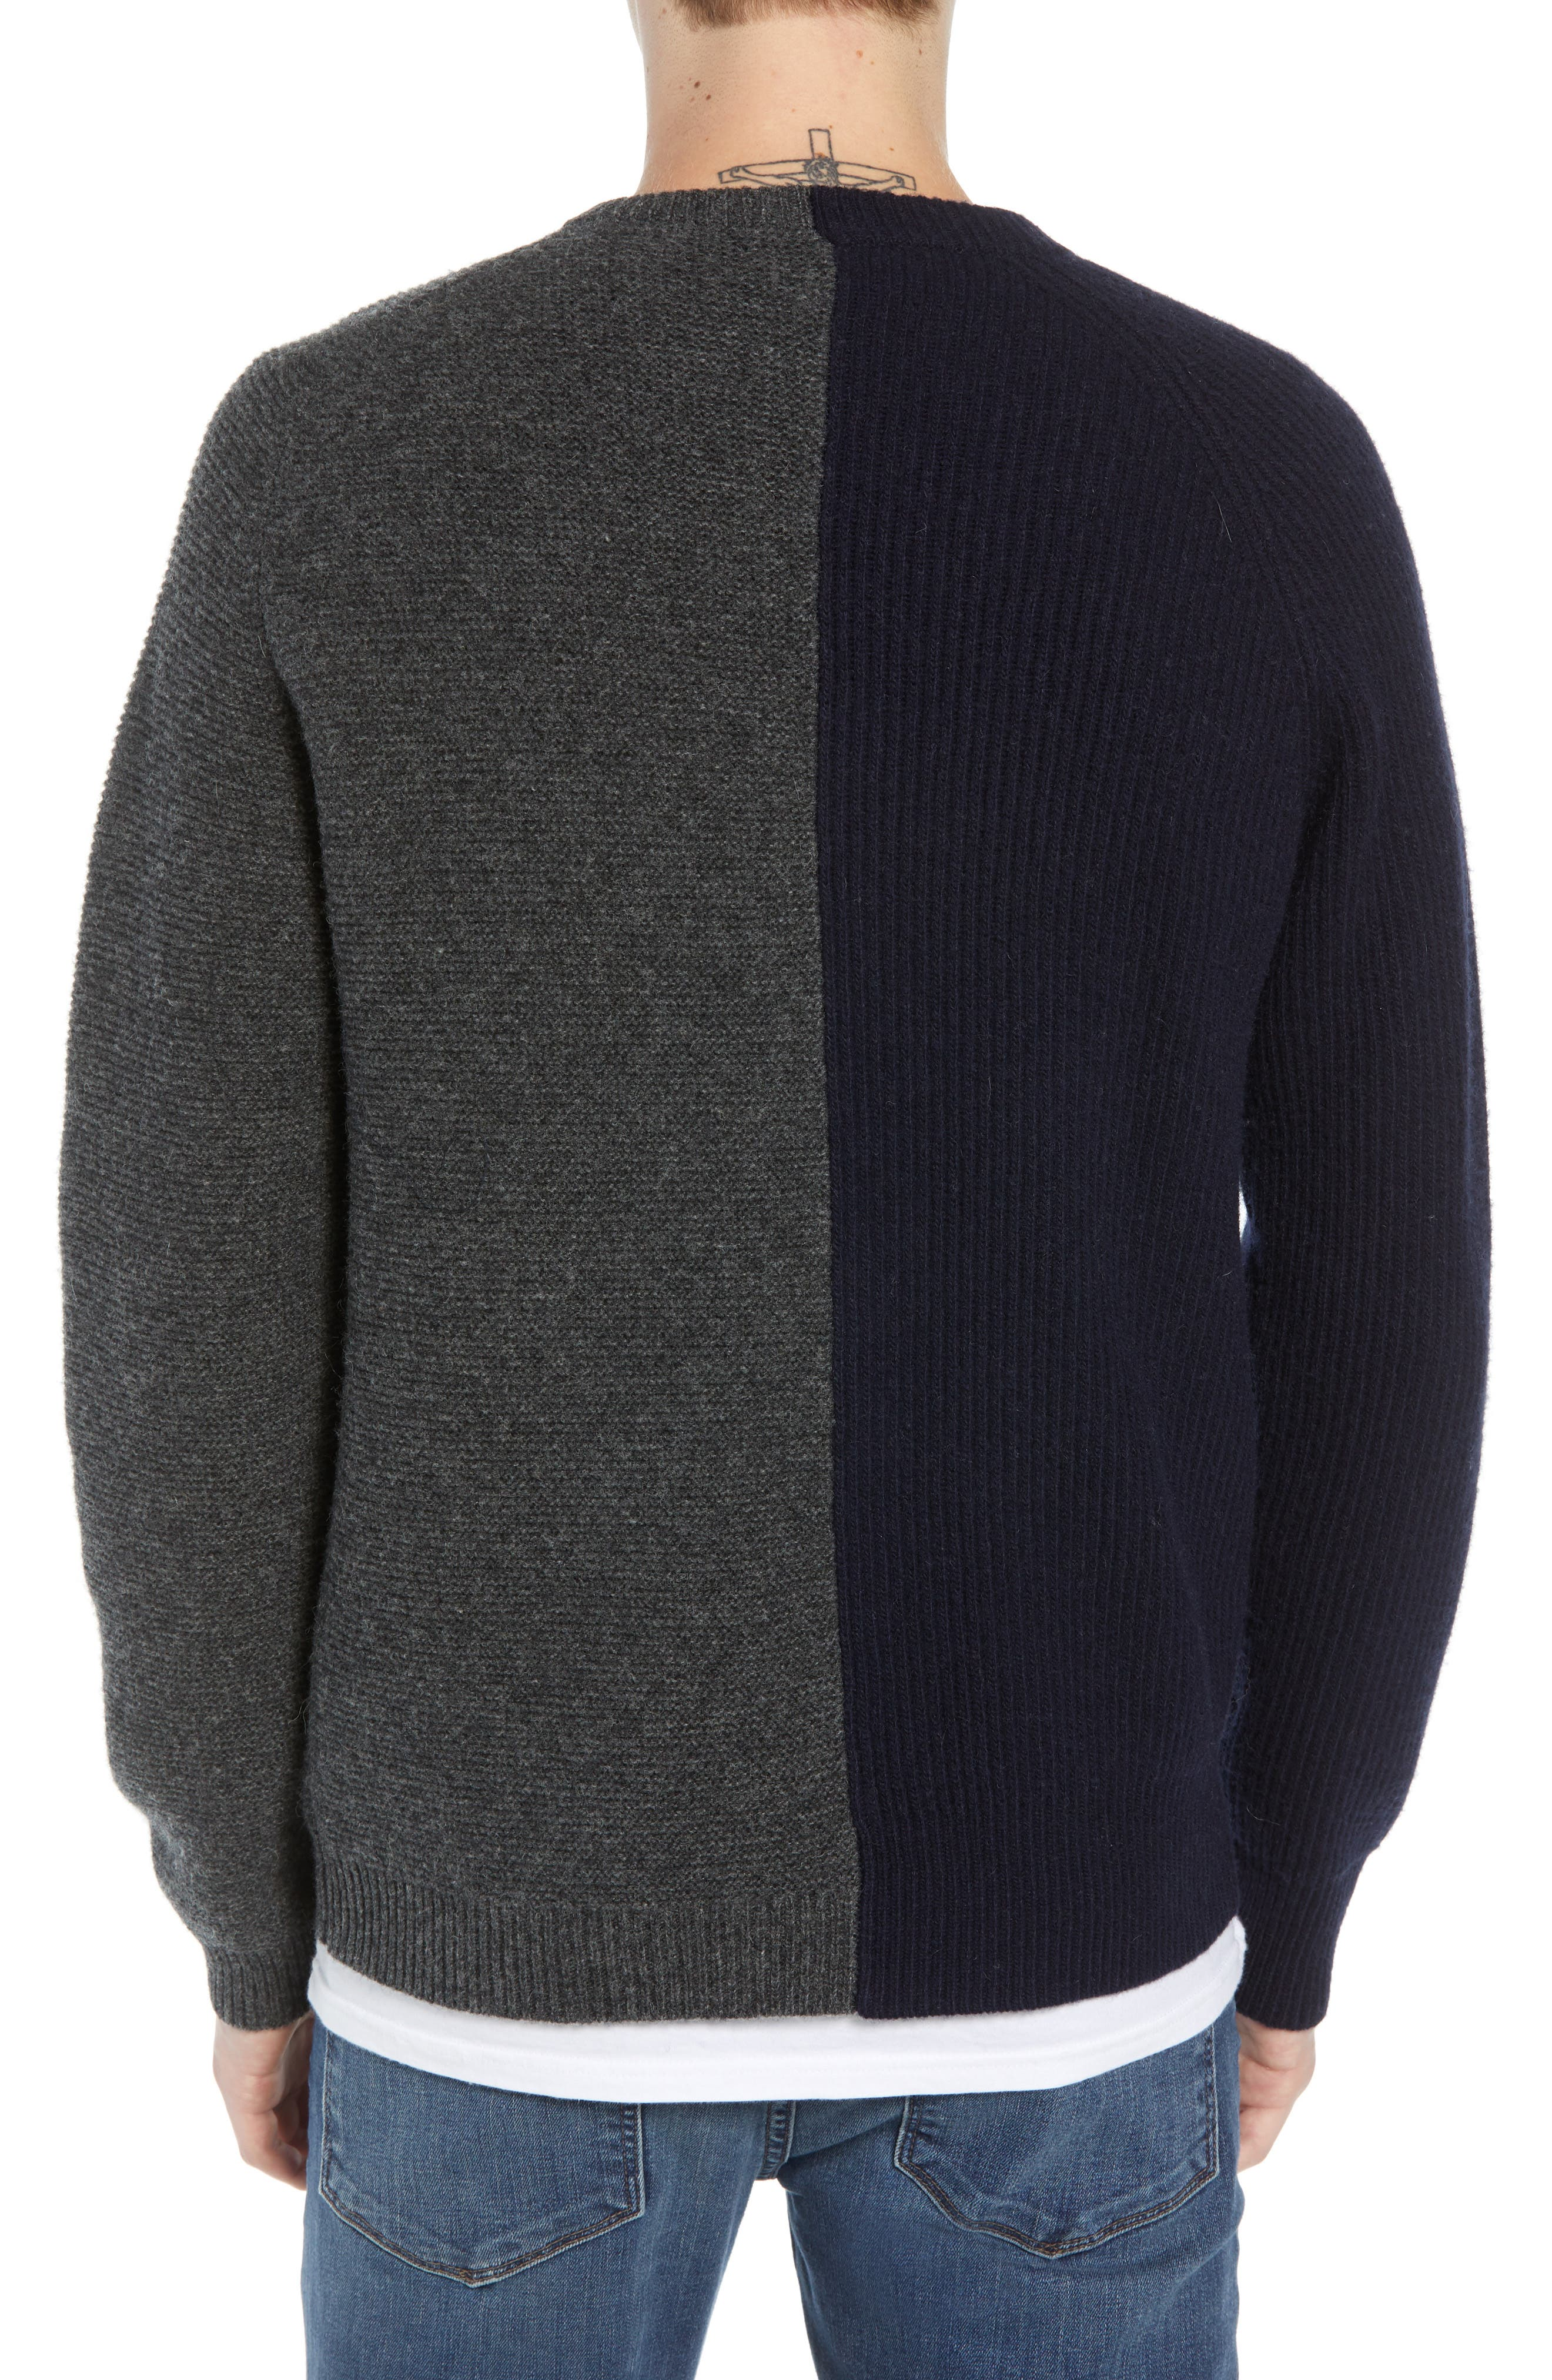 Mixed Texture Wool Blend Sweater,                             Alternate thumbnail 2, color,                             UTILITY BLUE CHARCOAL MELANGE